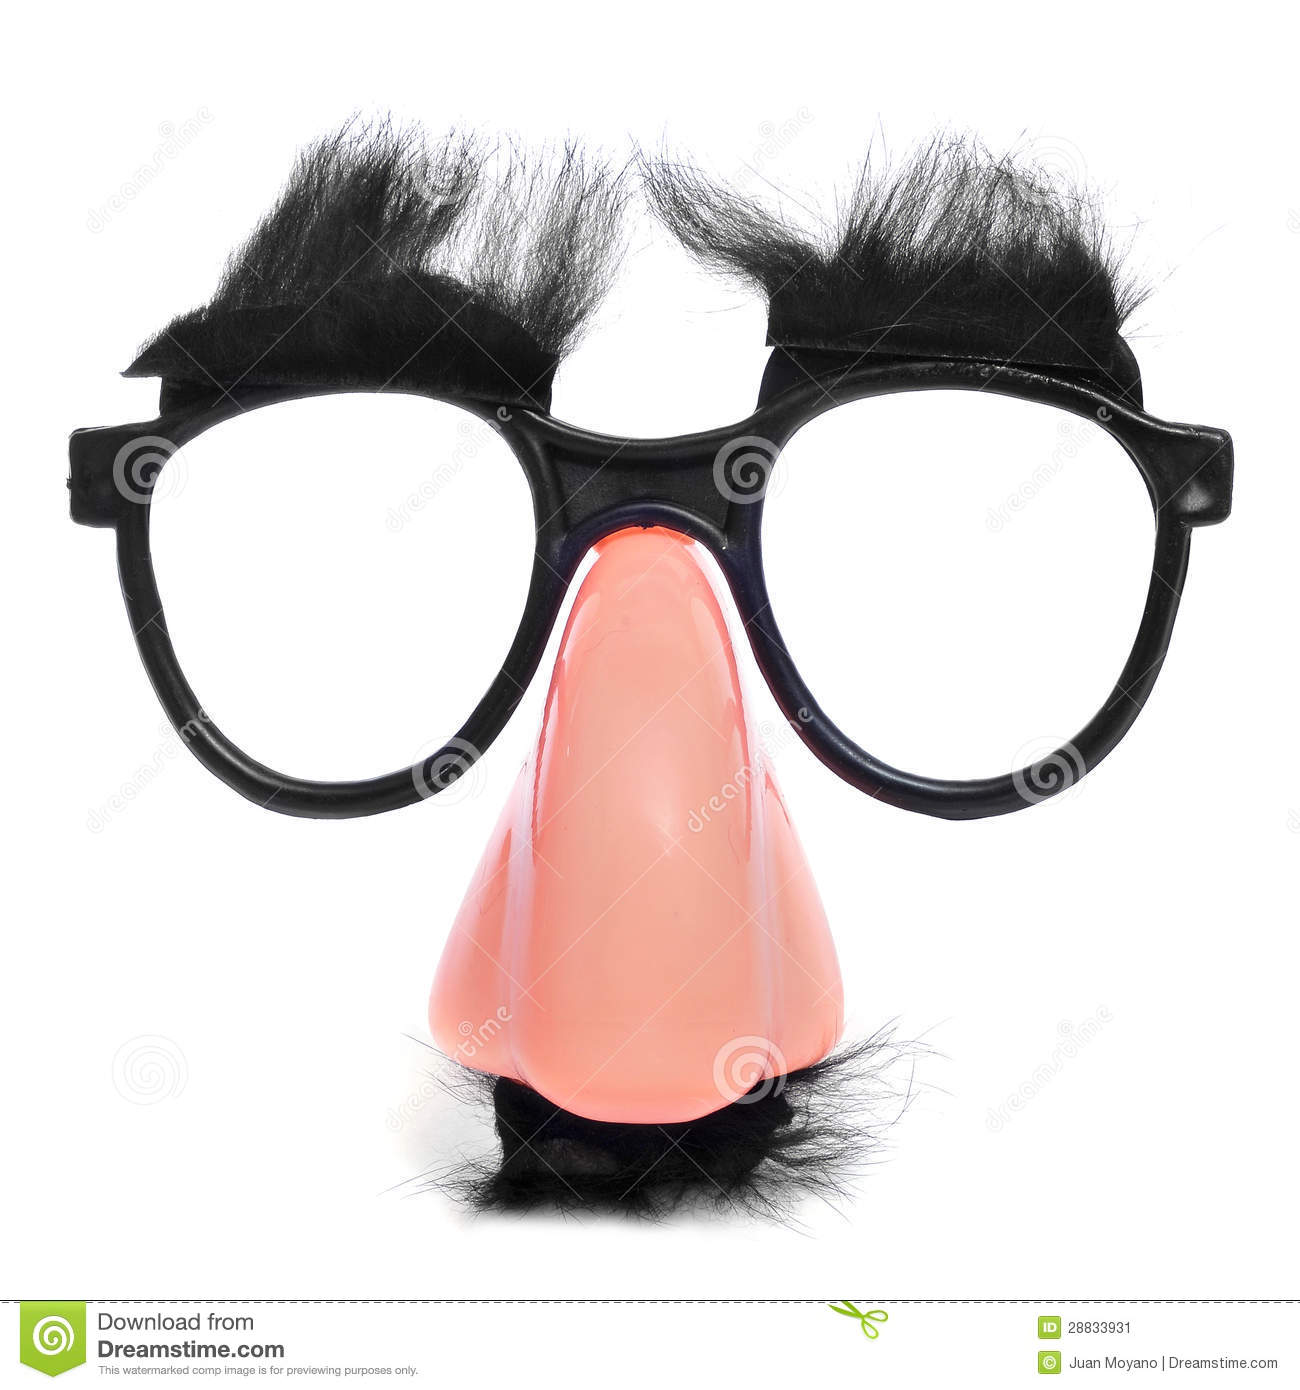 Closeup of a fake nose and glasses, with mustache and furry eyebrows.